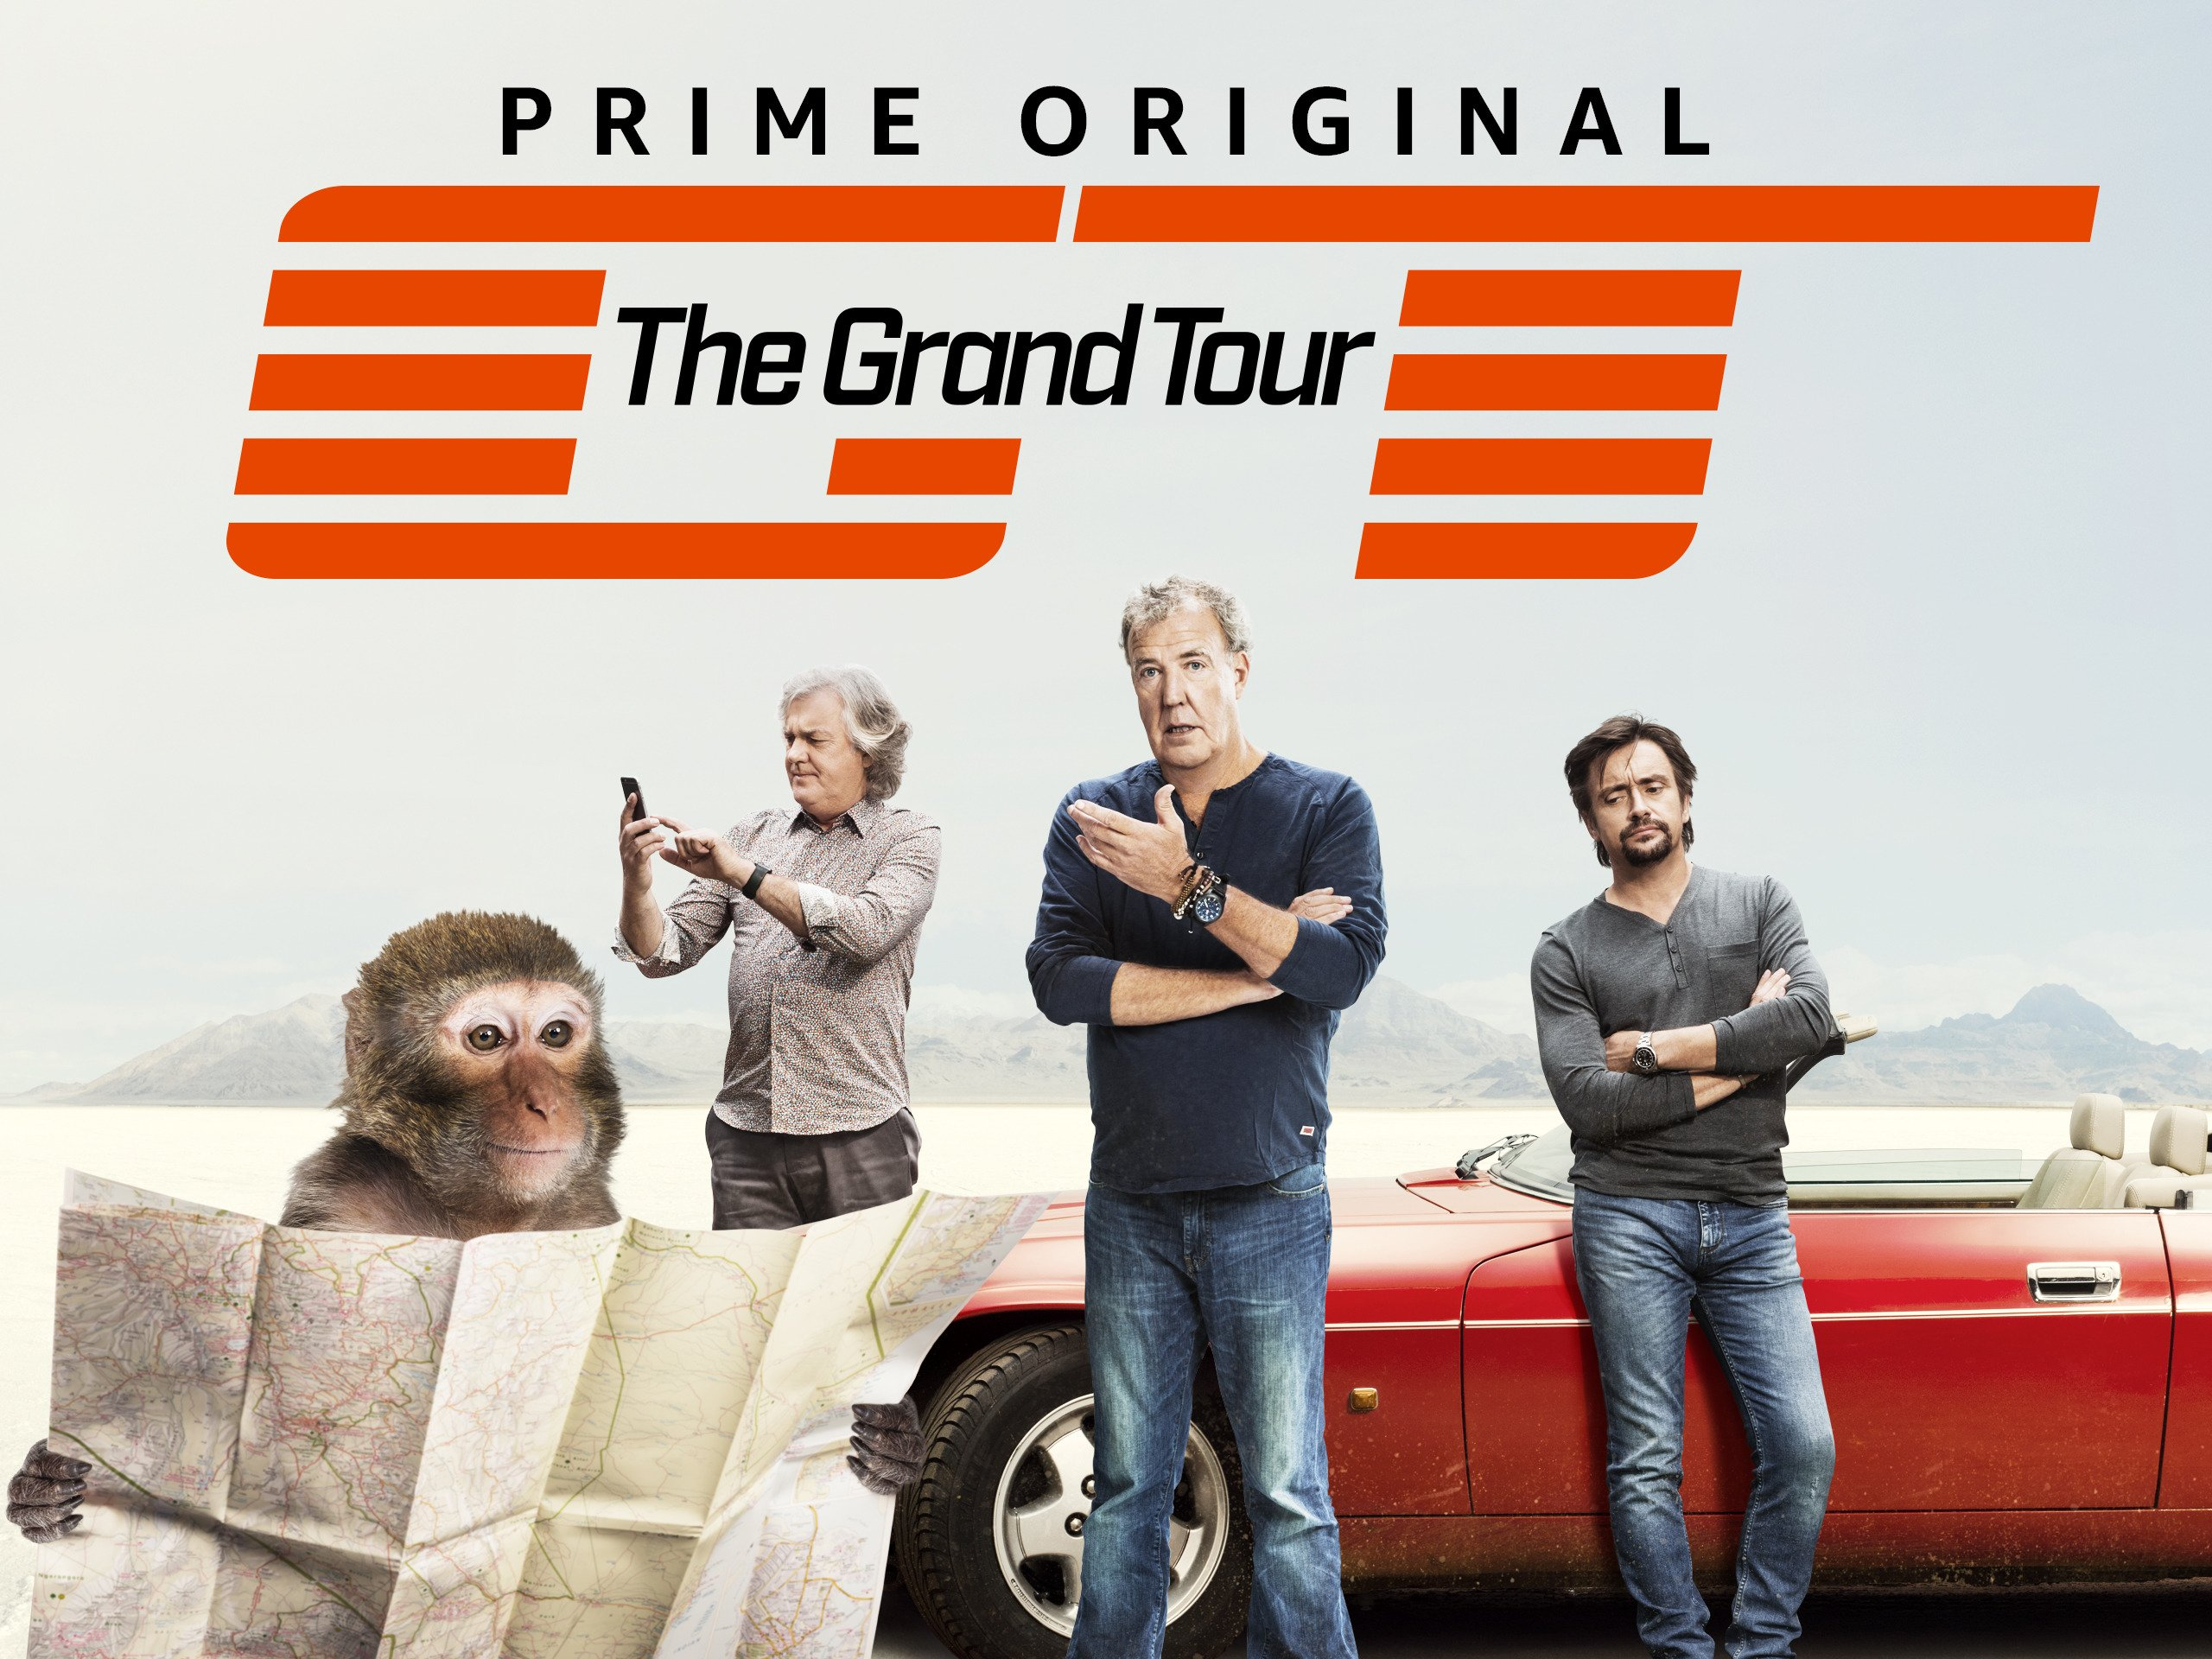 The Grand Tour Season 4 Episode 2 update